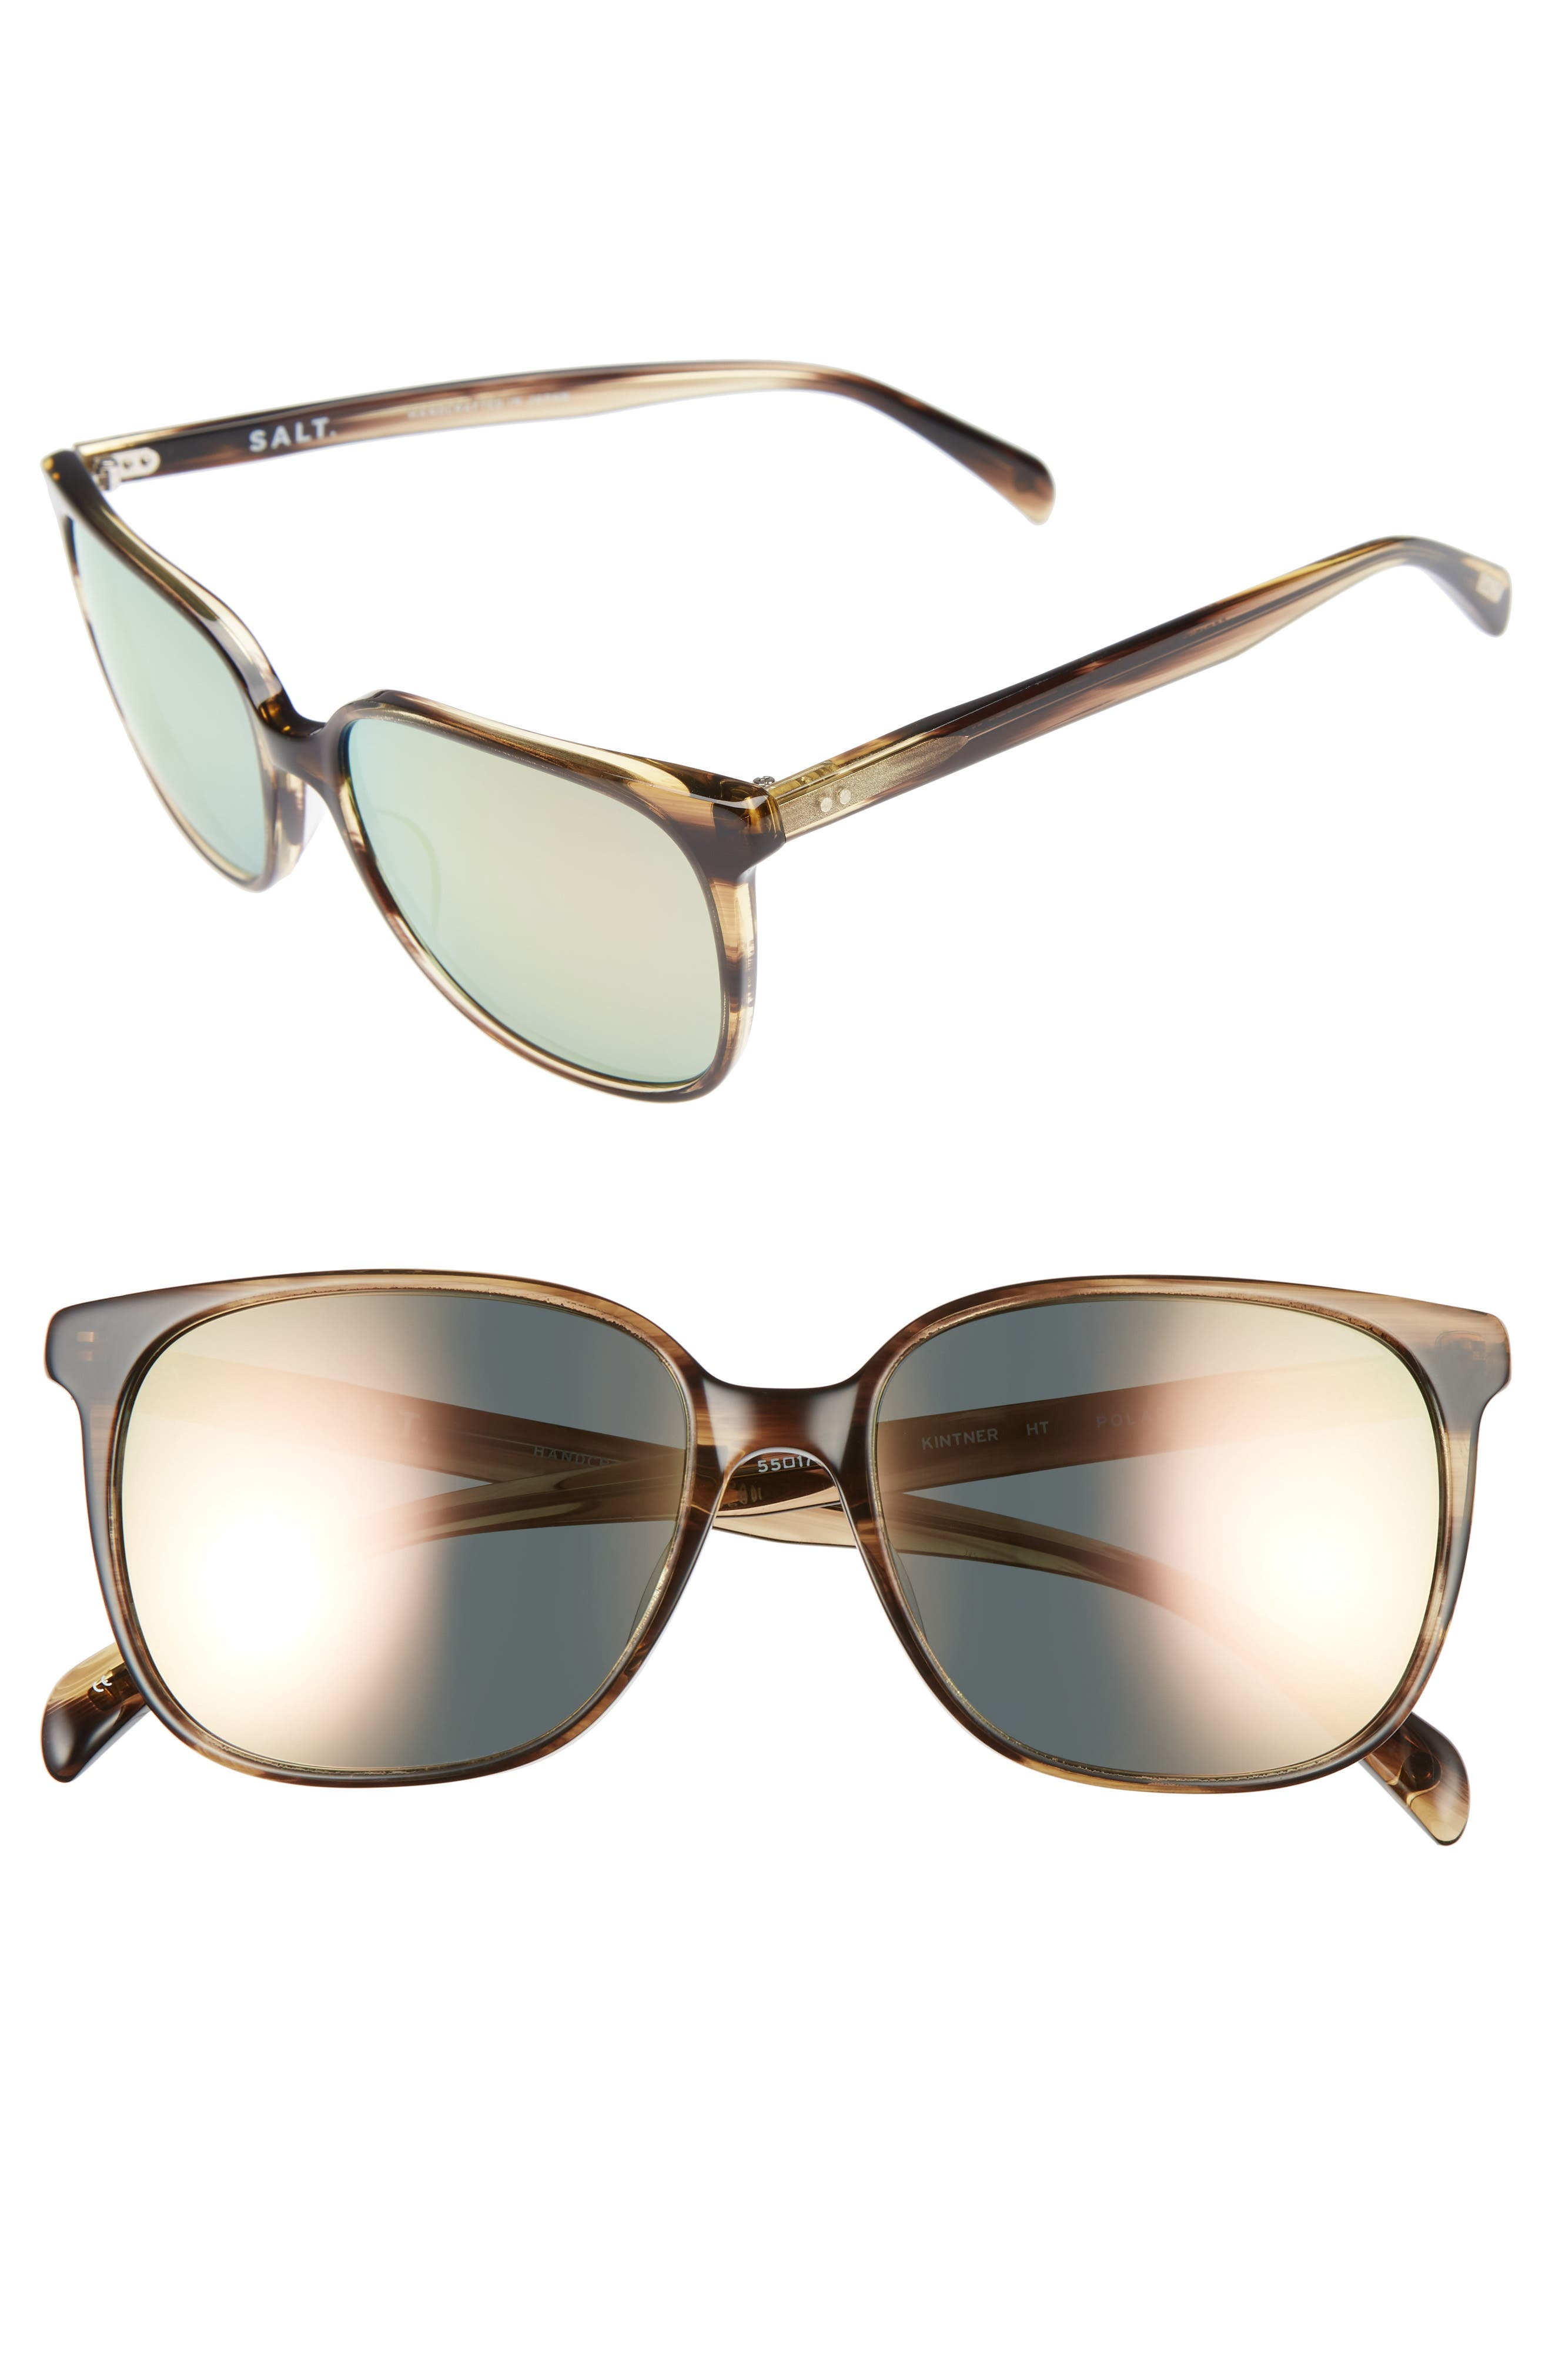 Salt Kintner 55mm Polarized Cat Eye Sunglasses